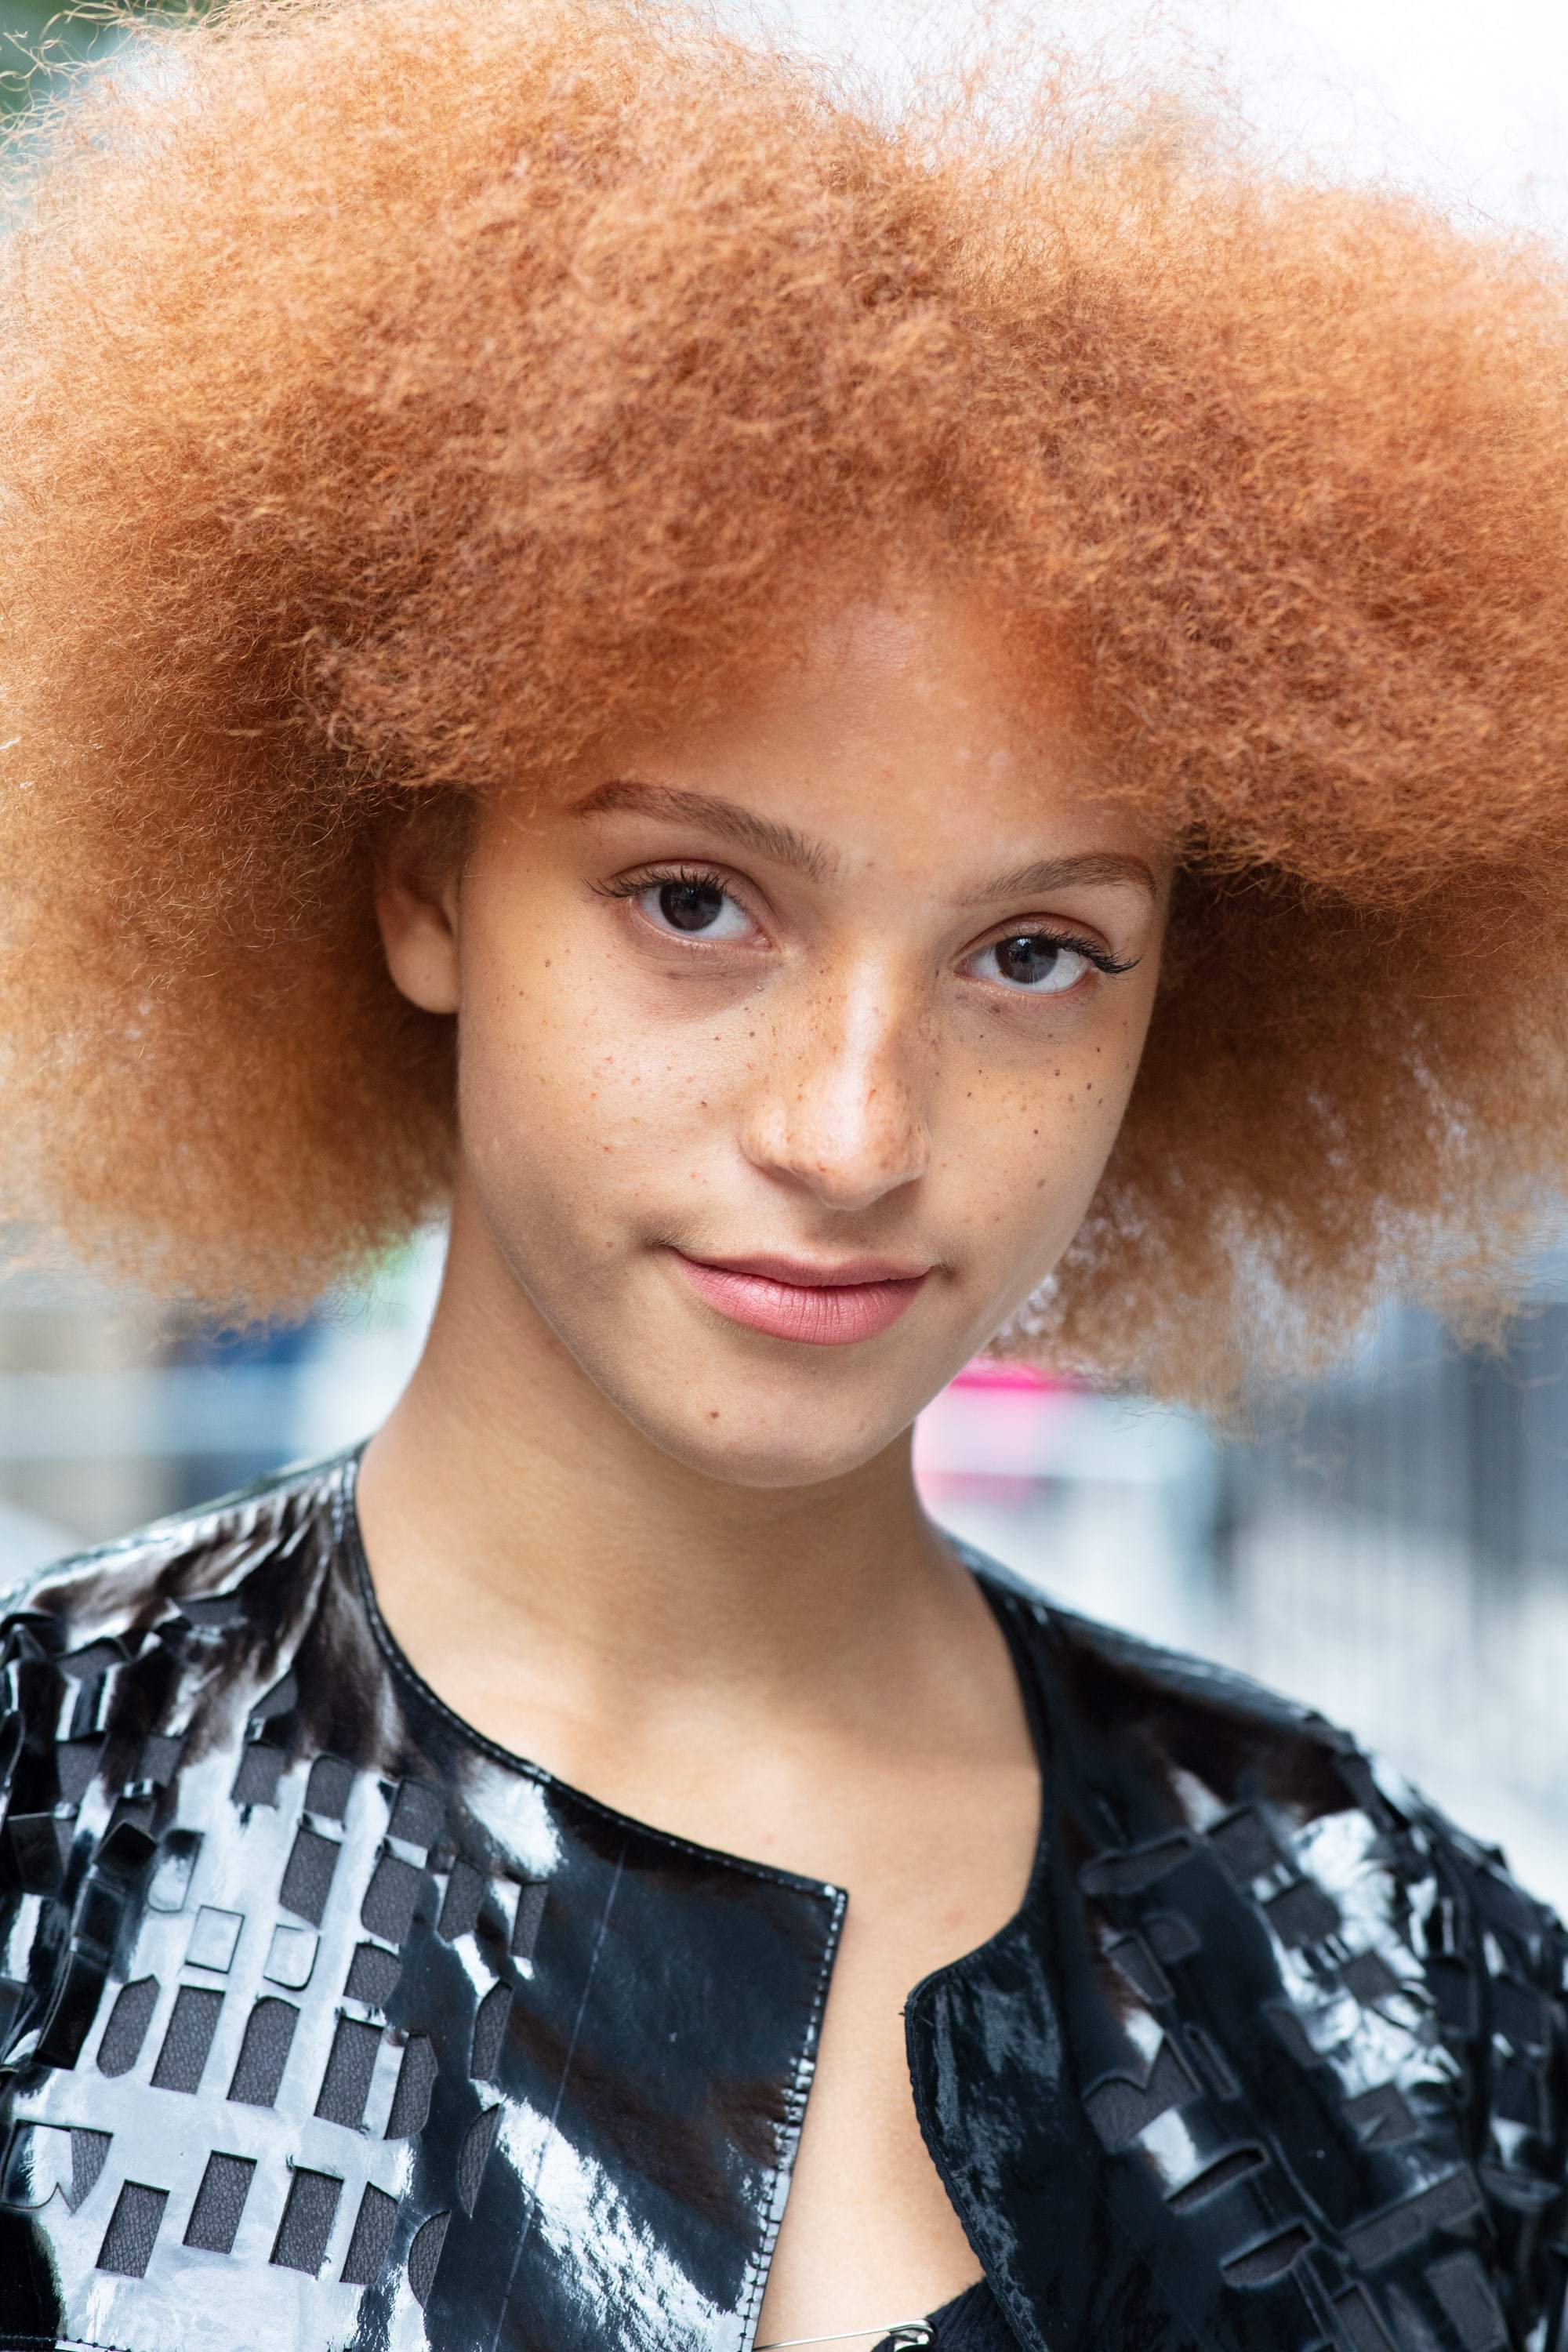 Hair treatment guide: Woman with big, fluffy ginger afro wearing black jacket outside on the street